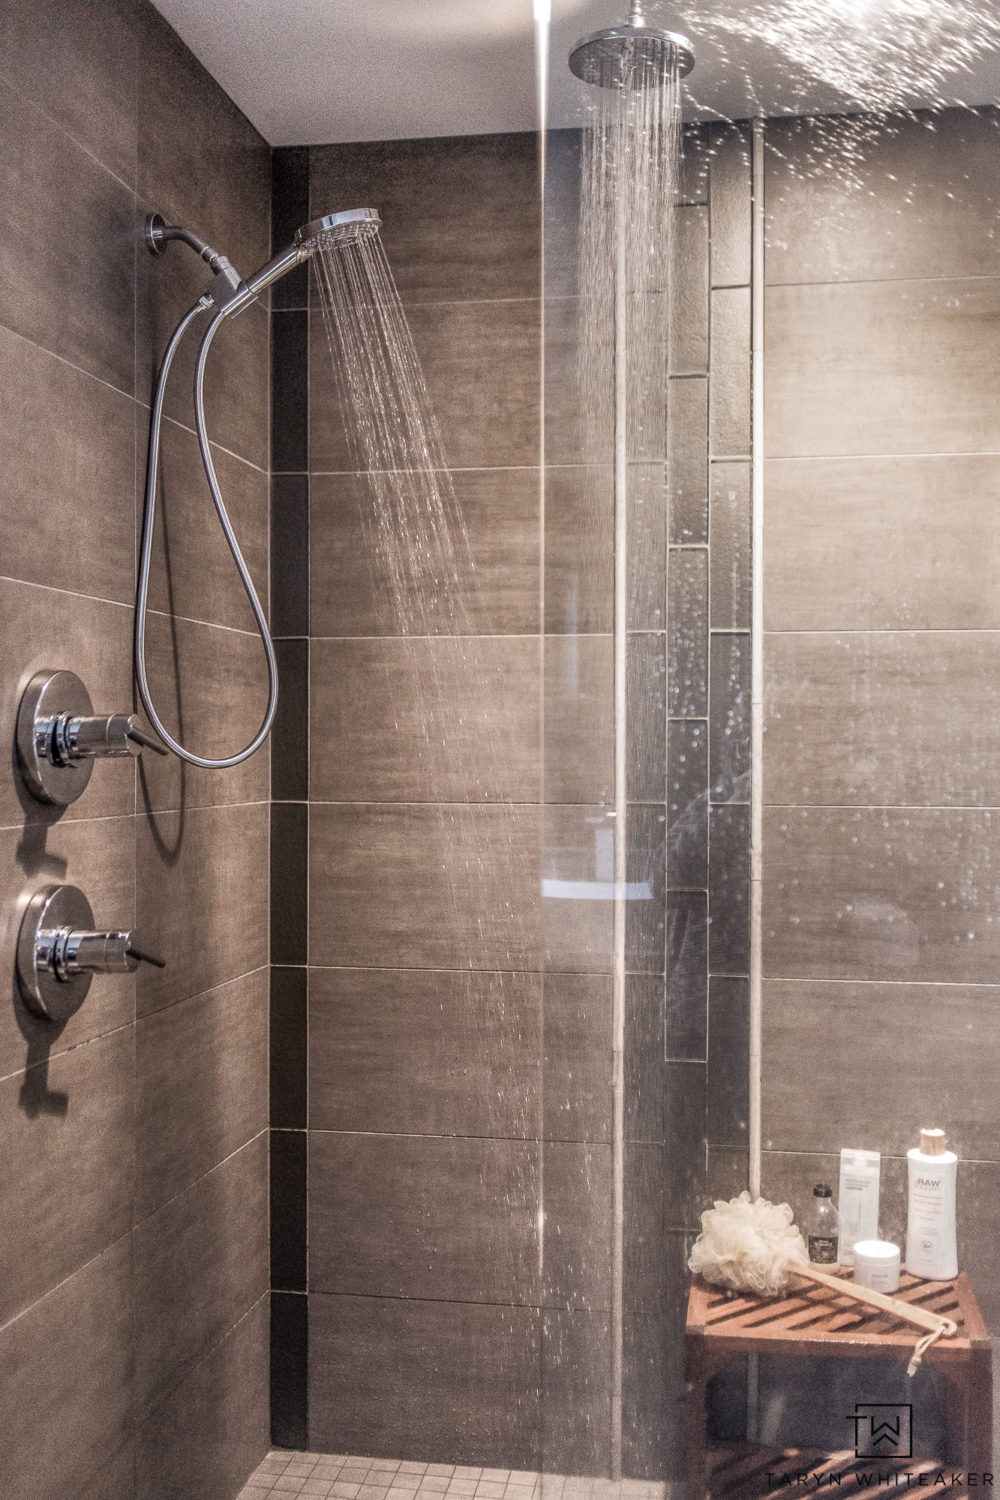 Update your master bathroom shower with the Hansgrohe PowerRain Technology to create a luxurious shower experience! Turn your shower into a spa!